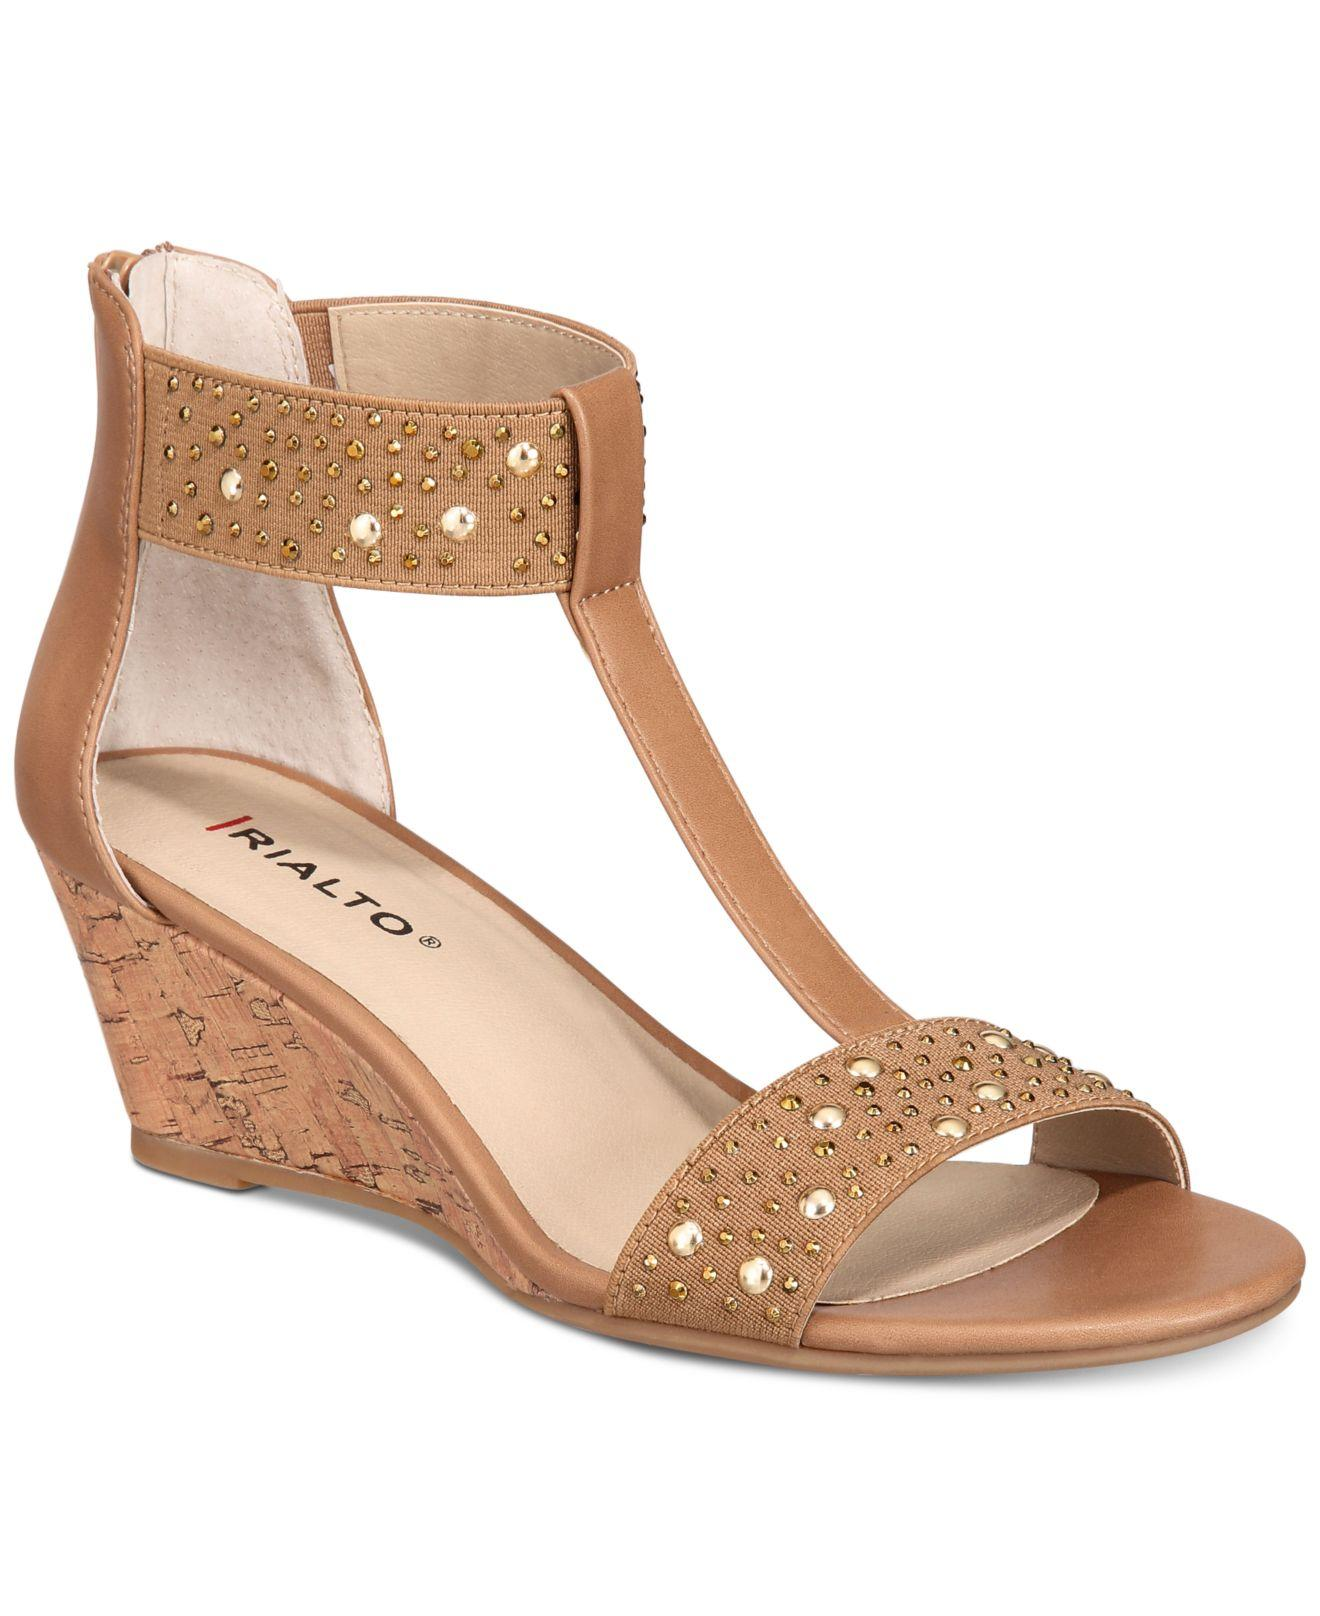 d61fd806dd Lyst - Rialto Cleo Embellished Wedge Sandals in Natural